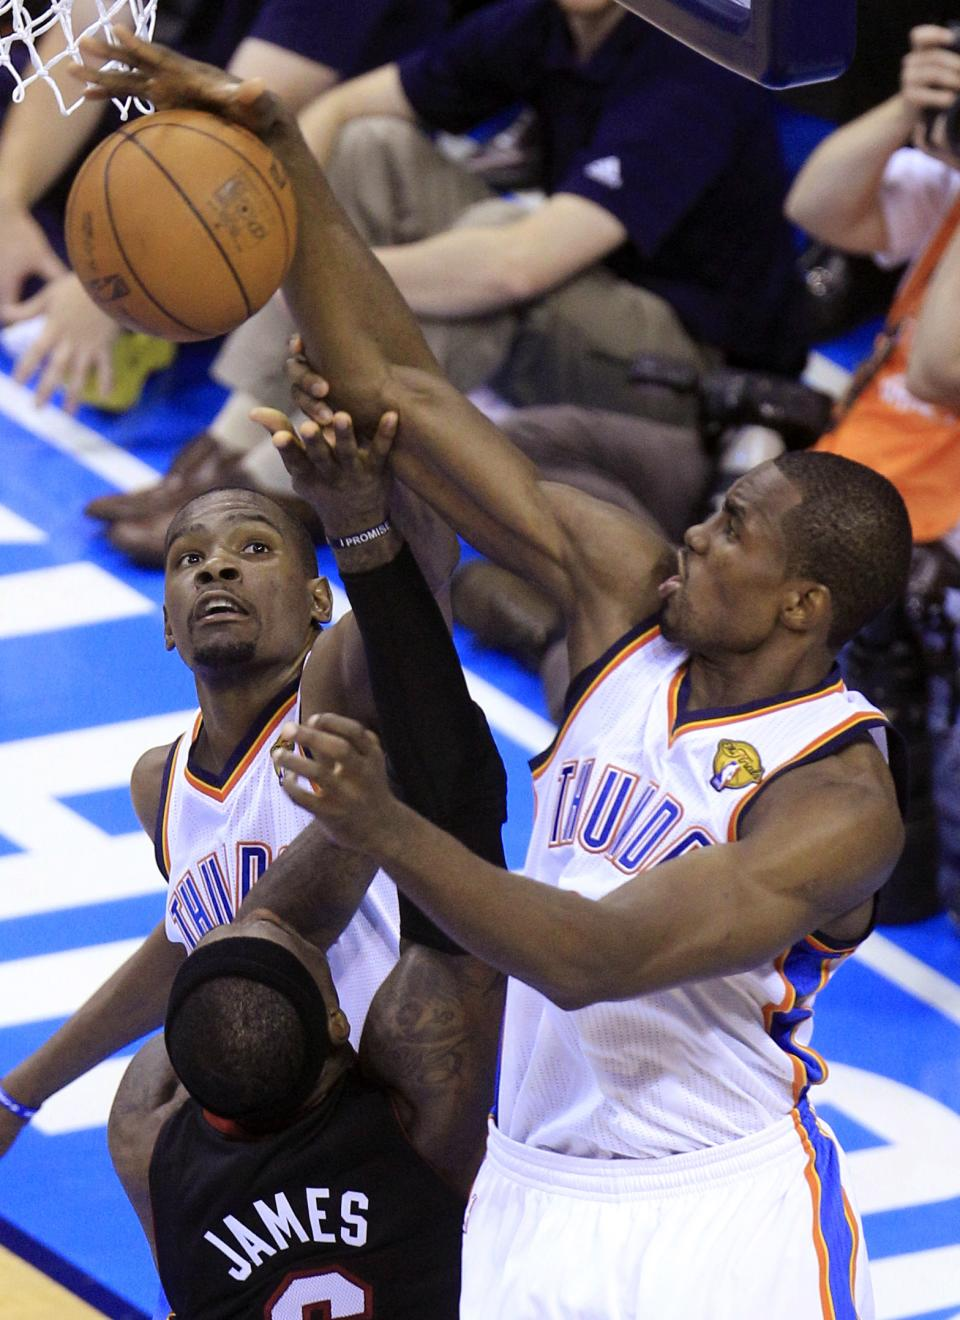 Miami Heat small forward LeBron James  is blocked by Oklahoma City Thunder power forward Serge Ibaka (9) from Republic of Congo as small forward Kevin Durant (35) helps during the second half at Game 2 of the NBA finals basketball series, Thursday, June 14, 2012, in Oklahoma City. (AP Photo/Sue Ogrocki)